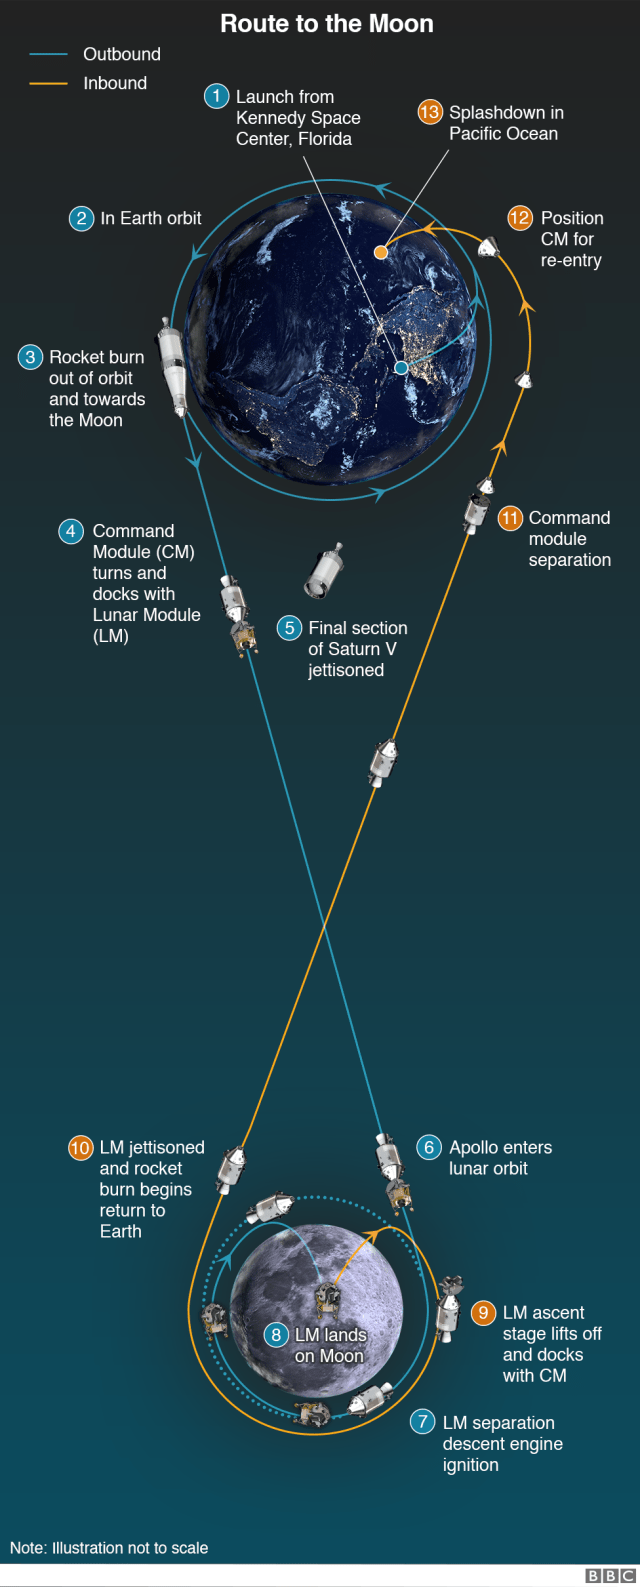 Infographic showing the route to the Moon